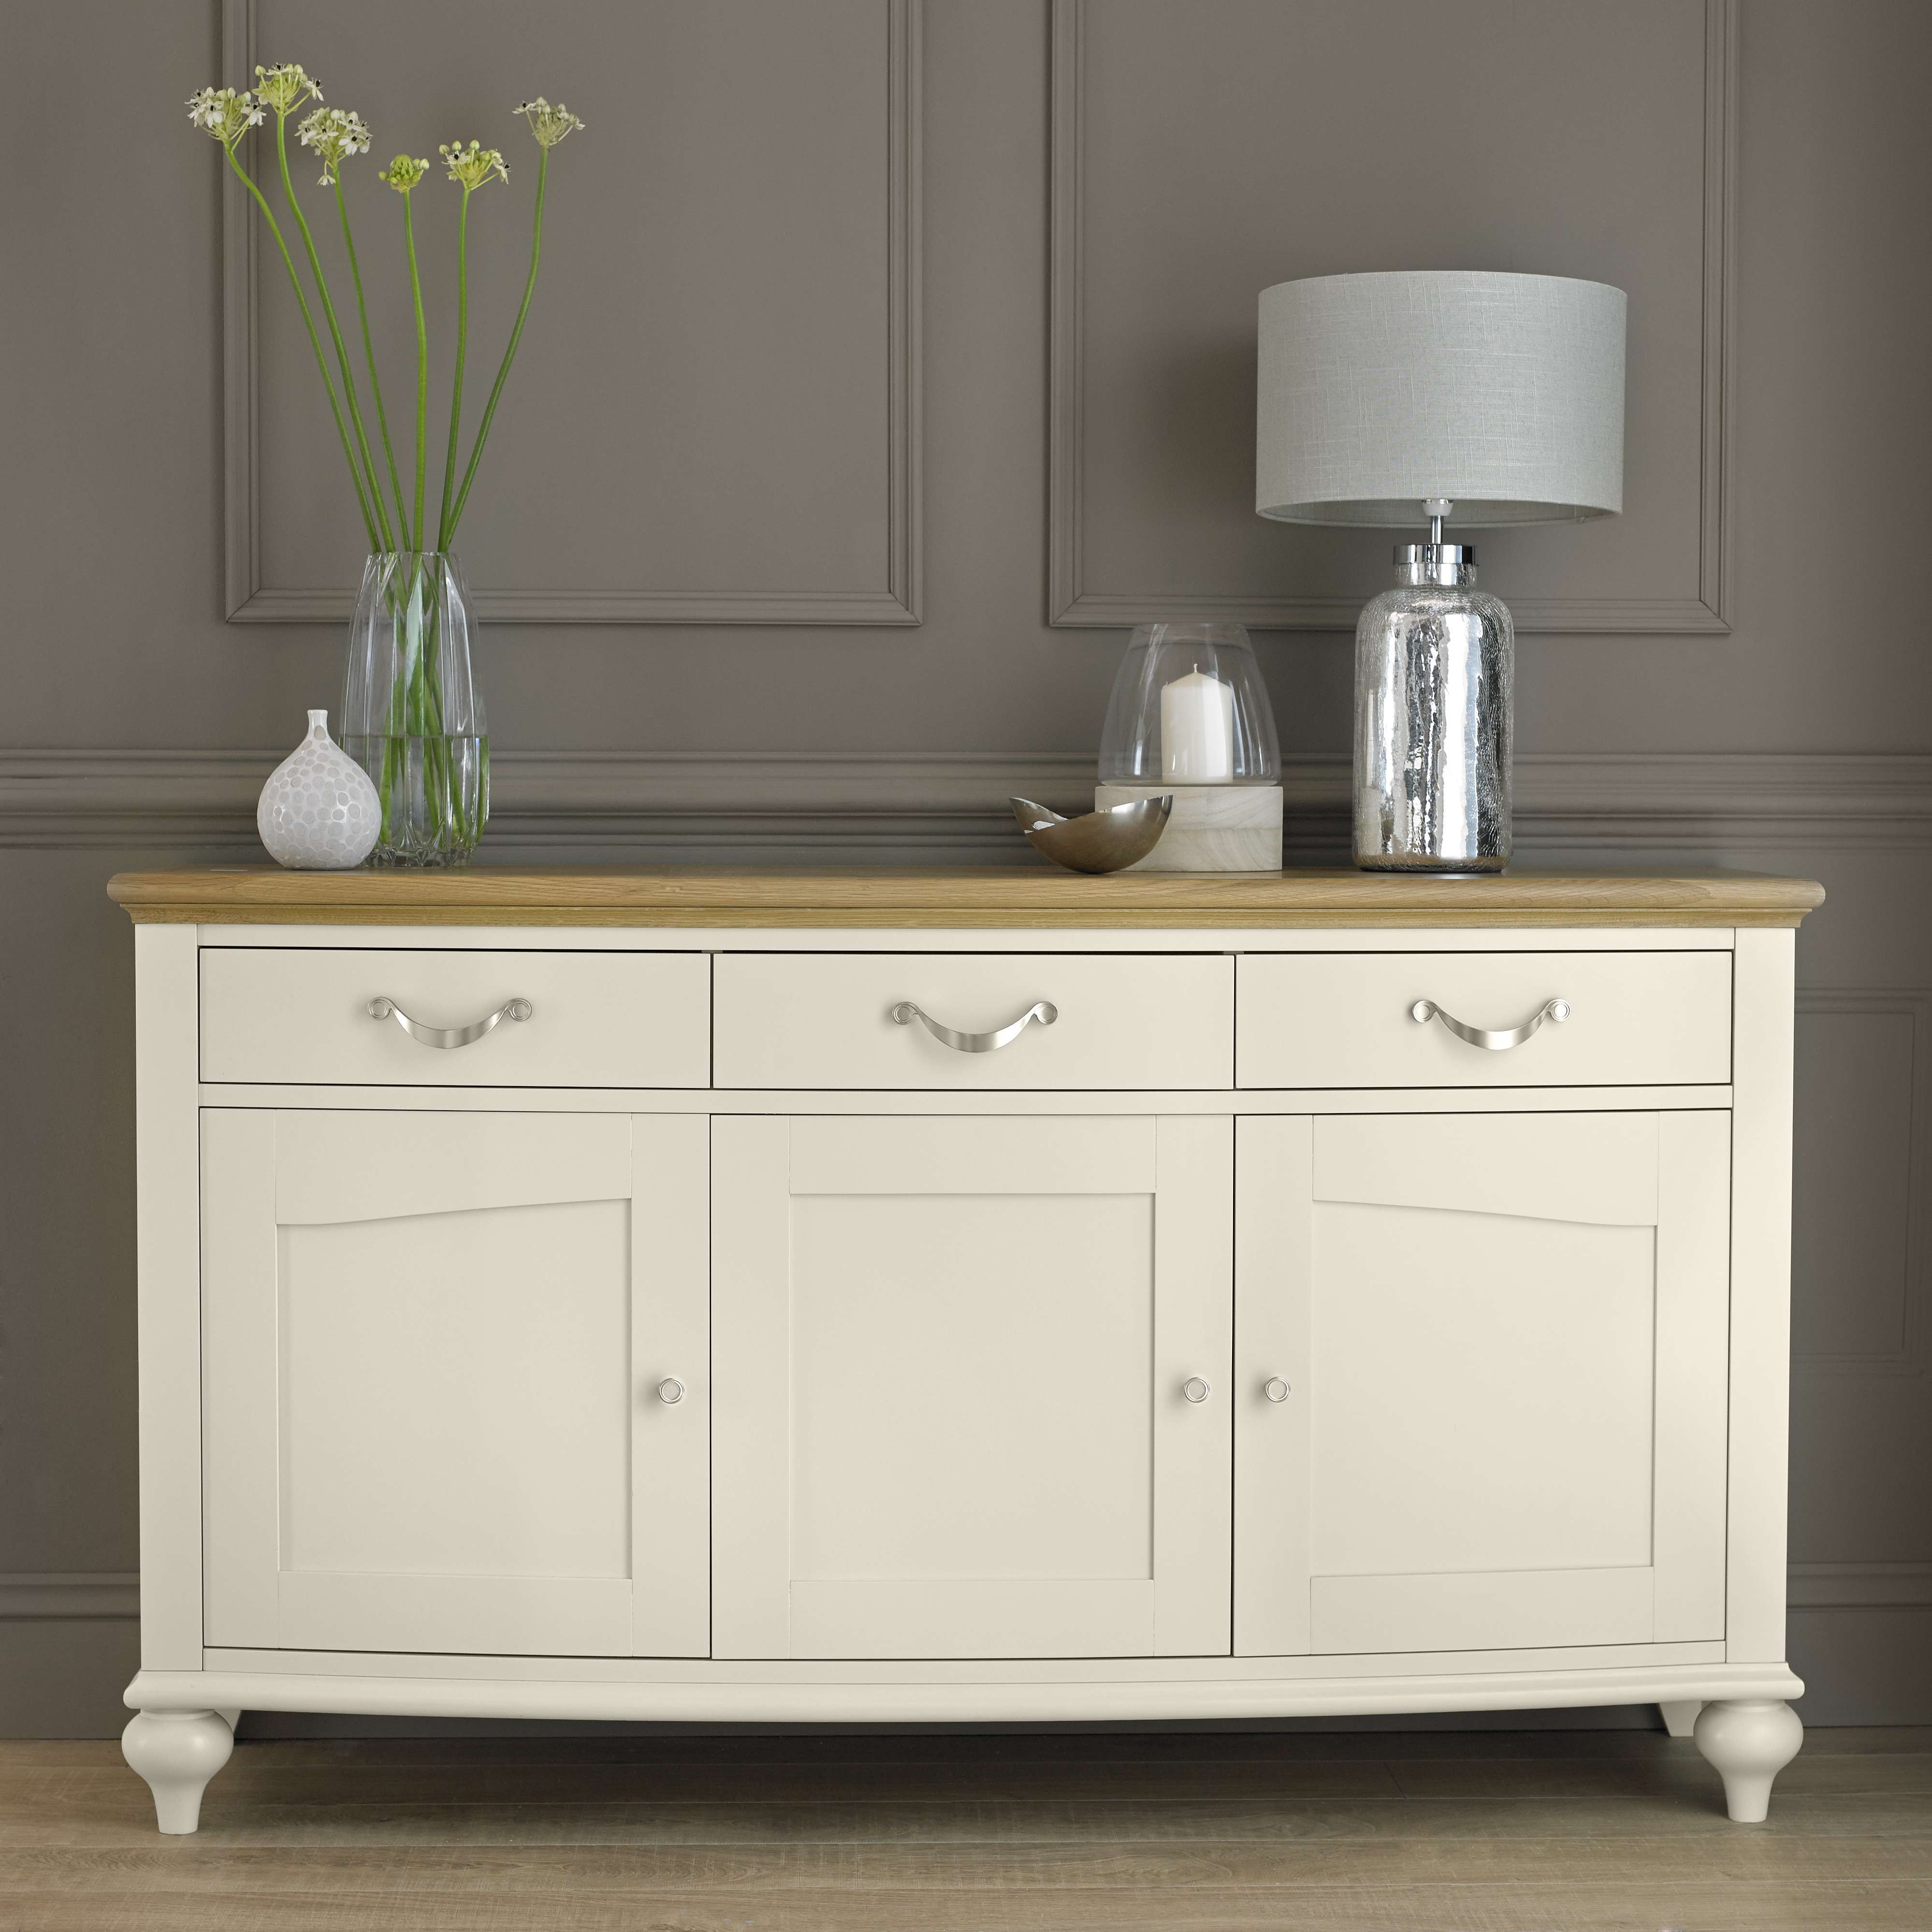 Painted Sideboards – White Wooden Sideboards | Oak Furniture Solutions With Regard To Low Wide Sideboards (View 16 of 20)